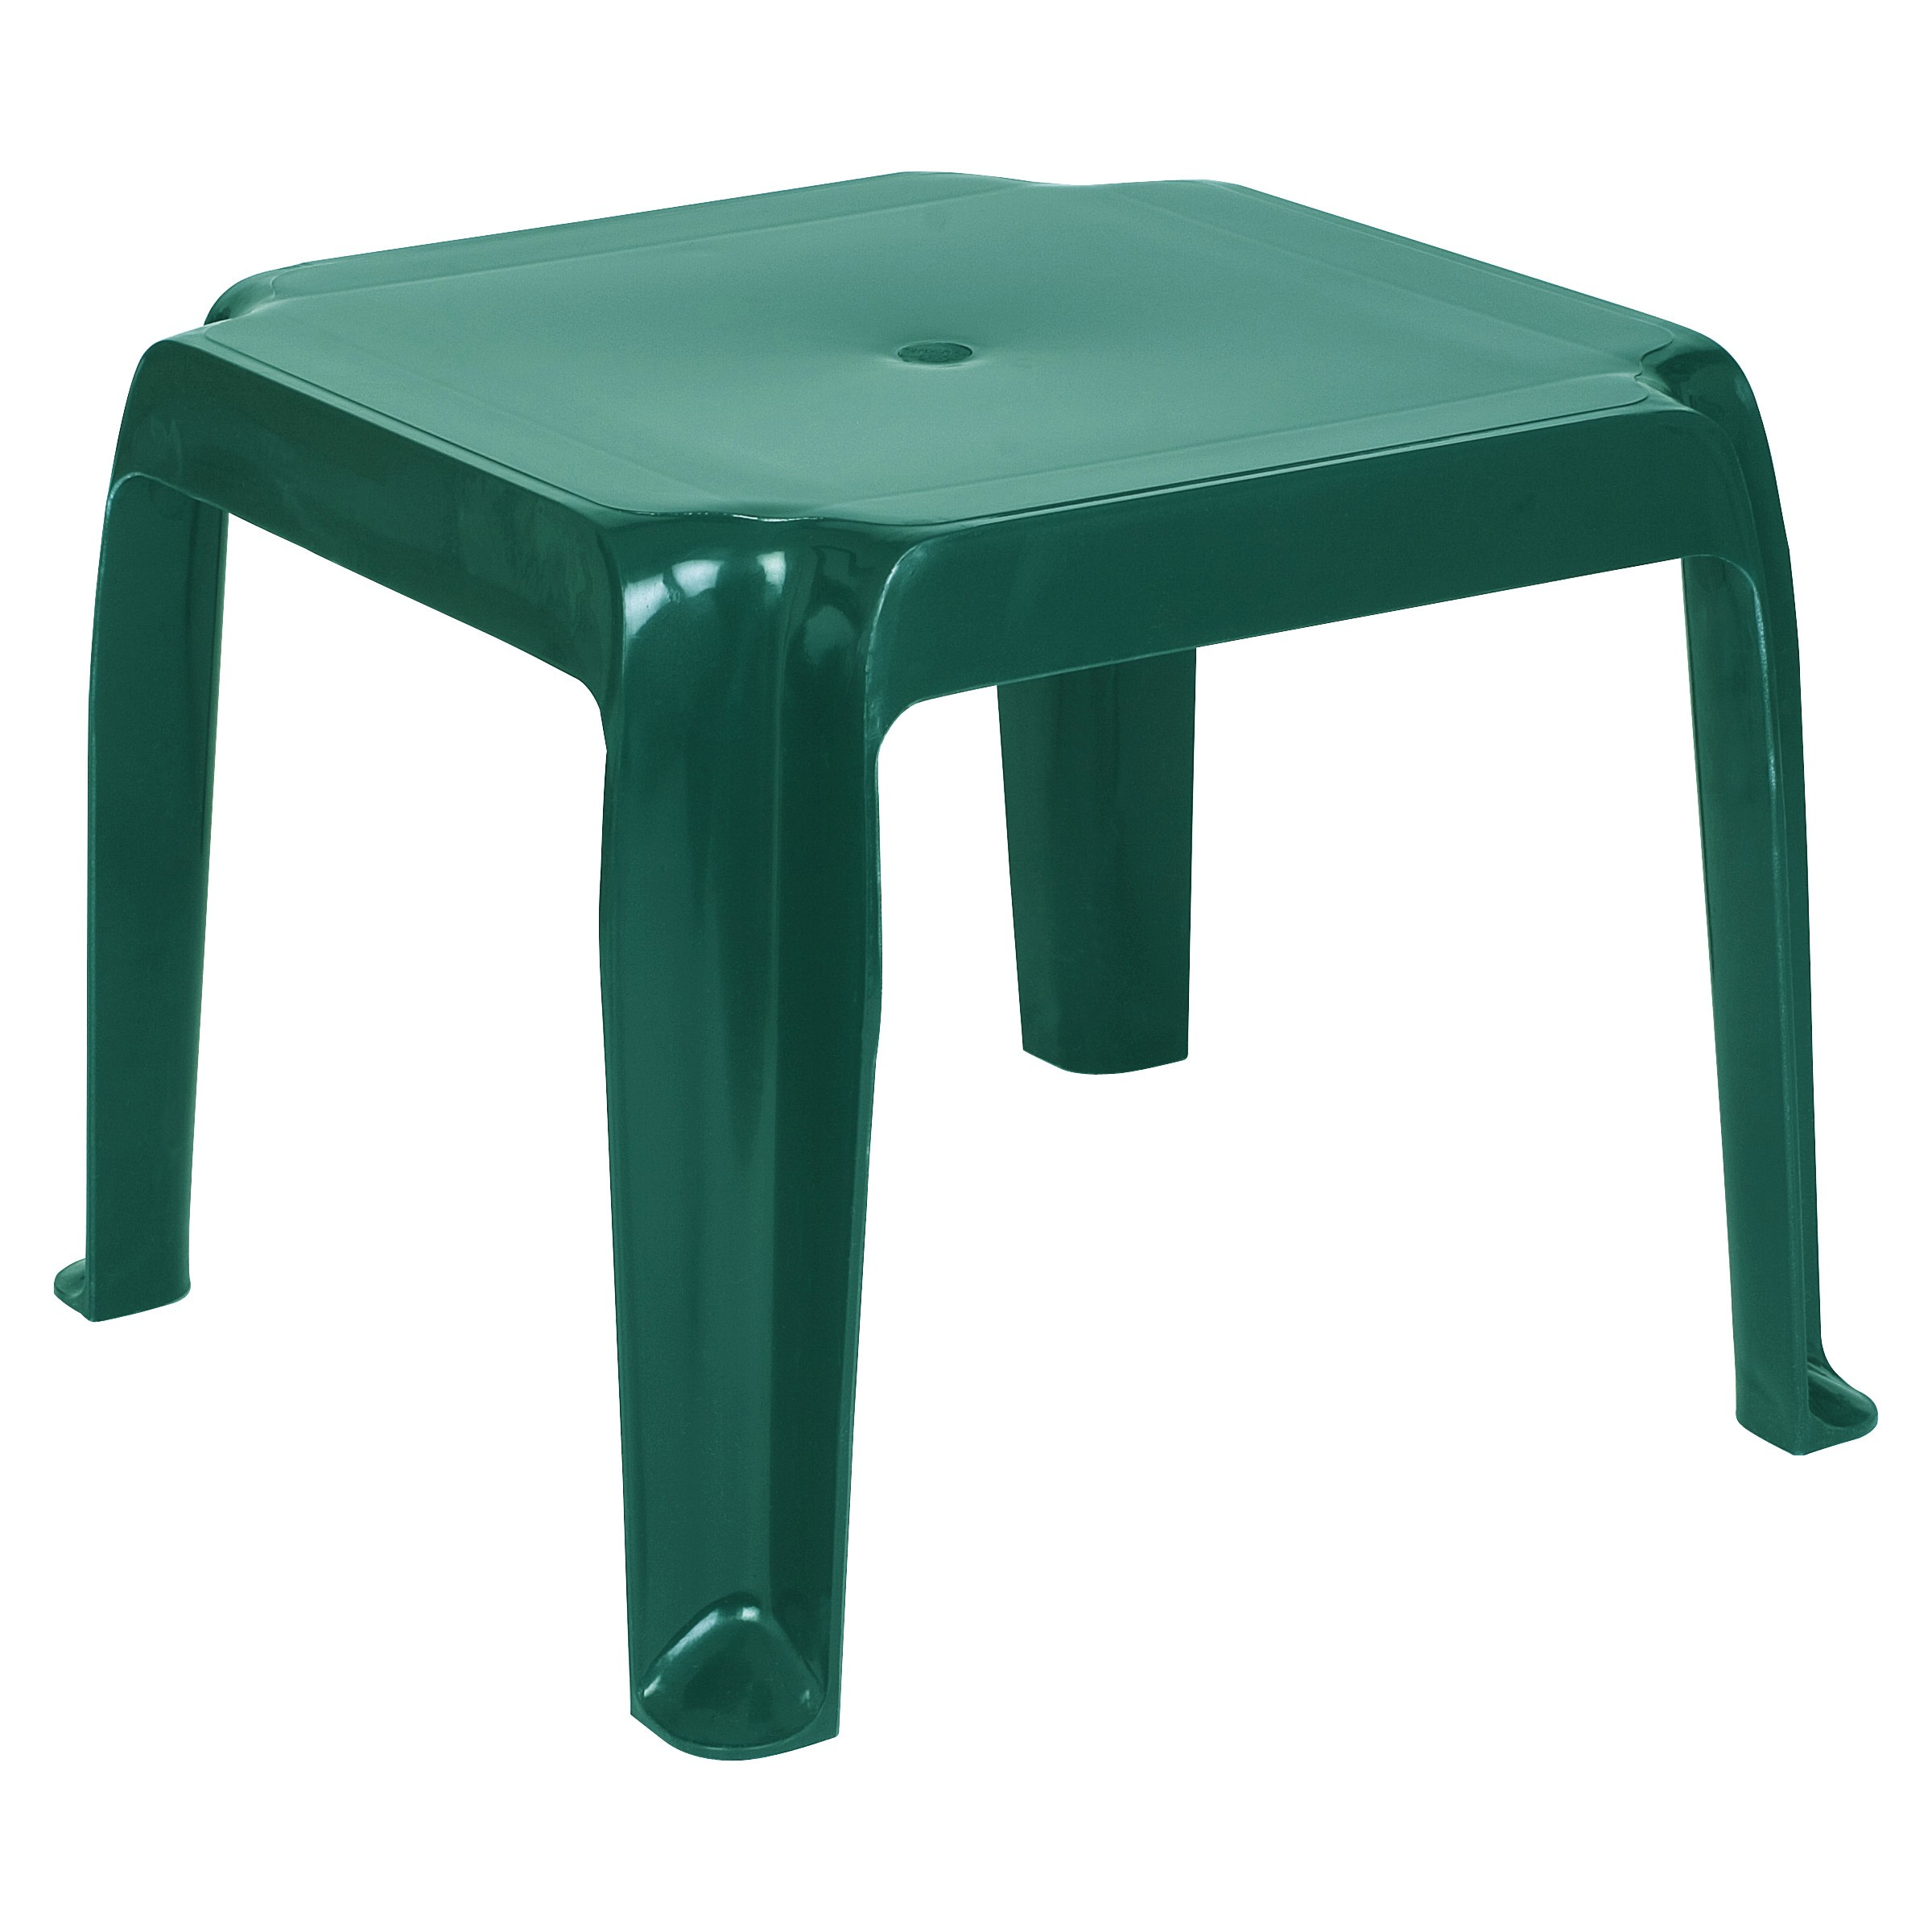 Commercial Sunray Resin Side Table - Green